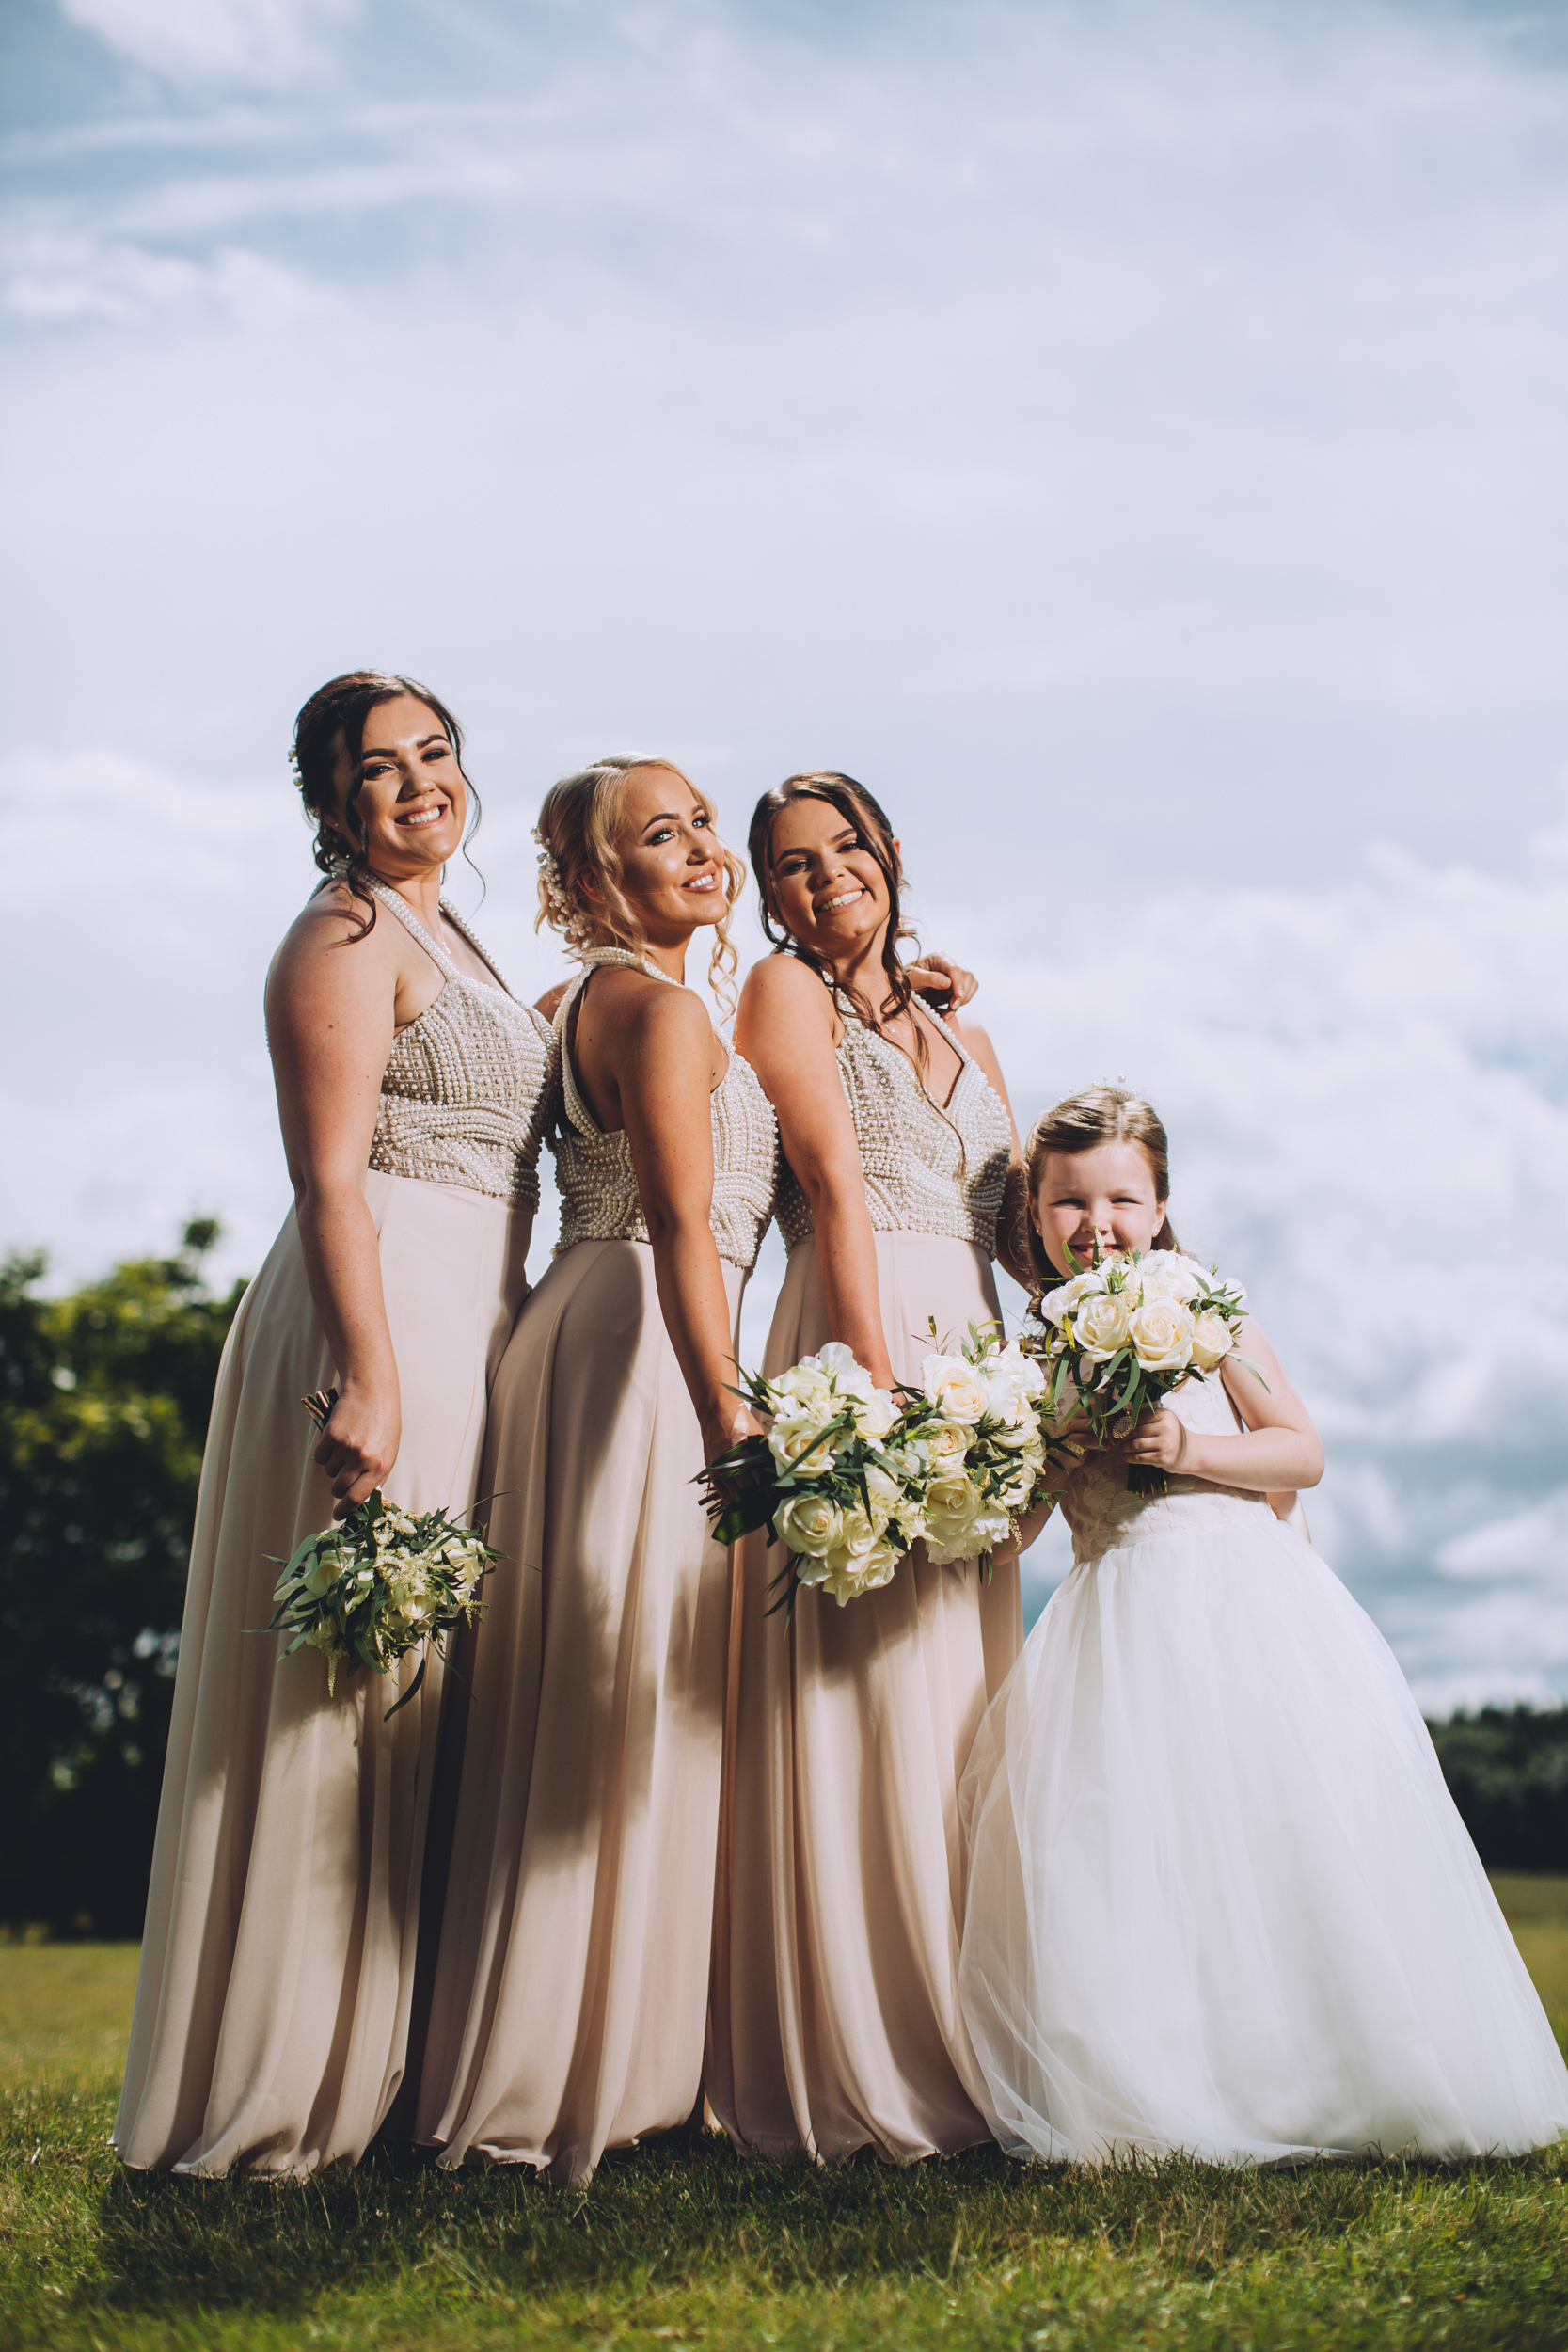 priory cottages wetherby wedding photographers16.jpg